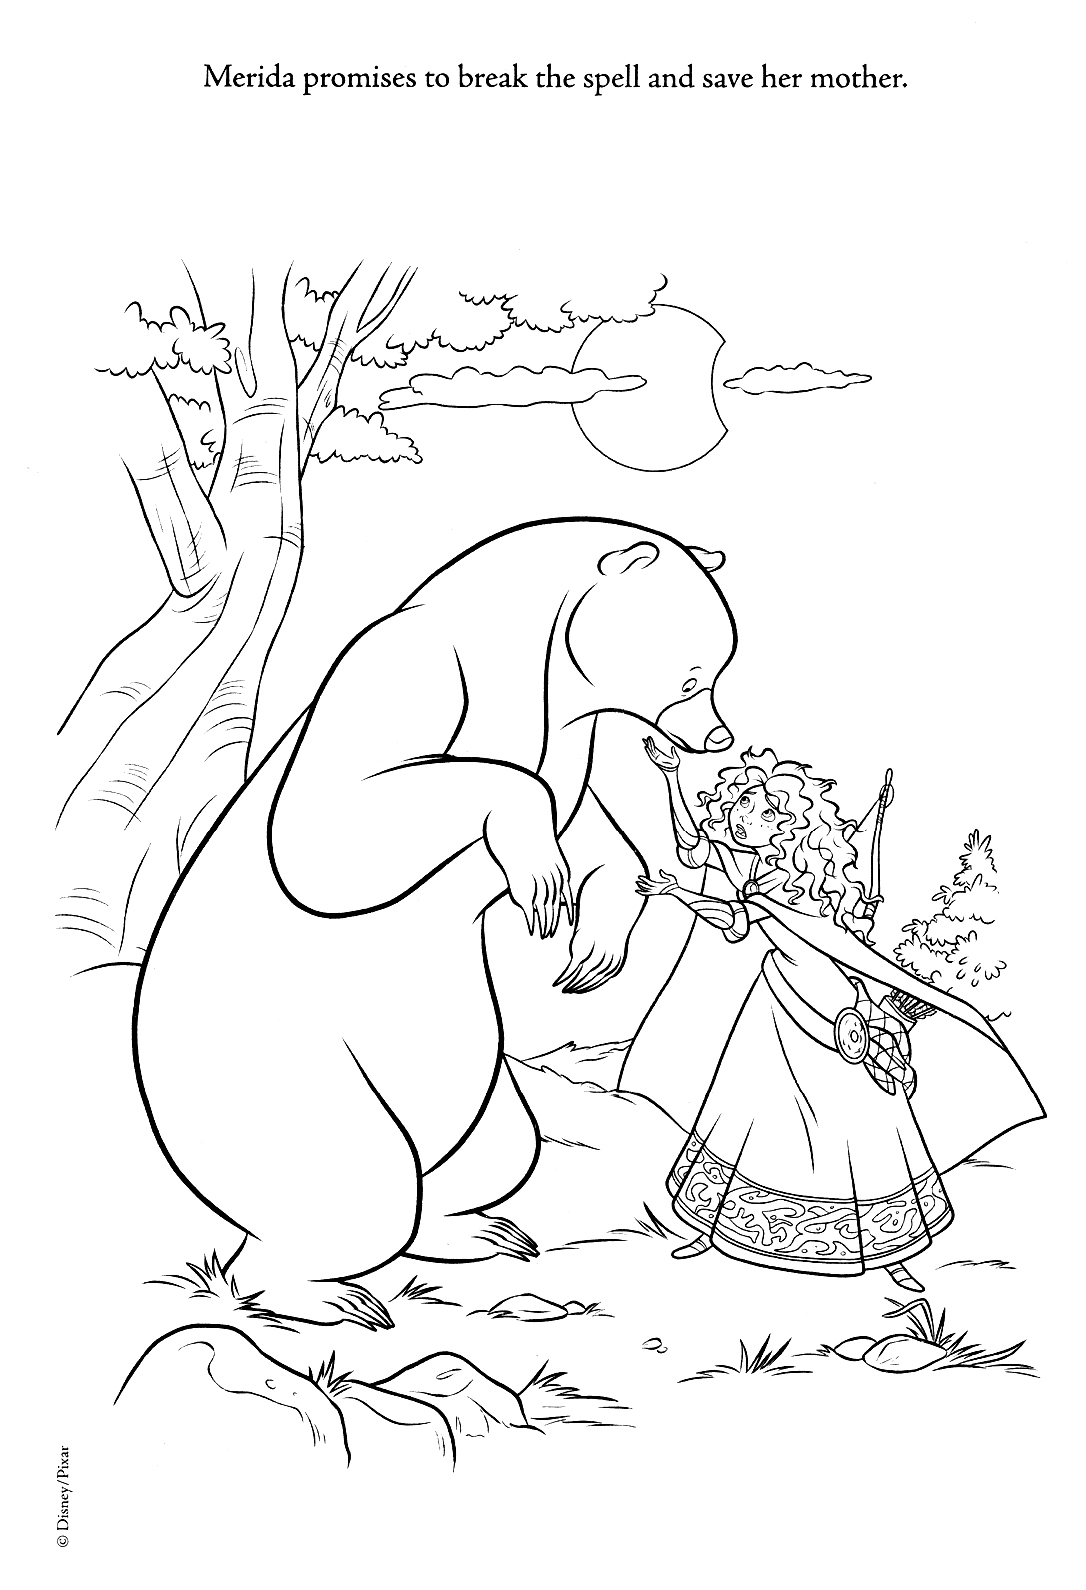 coloring pages com | New Brave Coloring Pages (Spoiler) - Brave Photo (31465898 ...